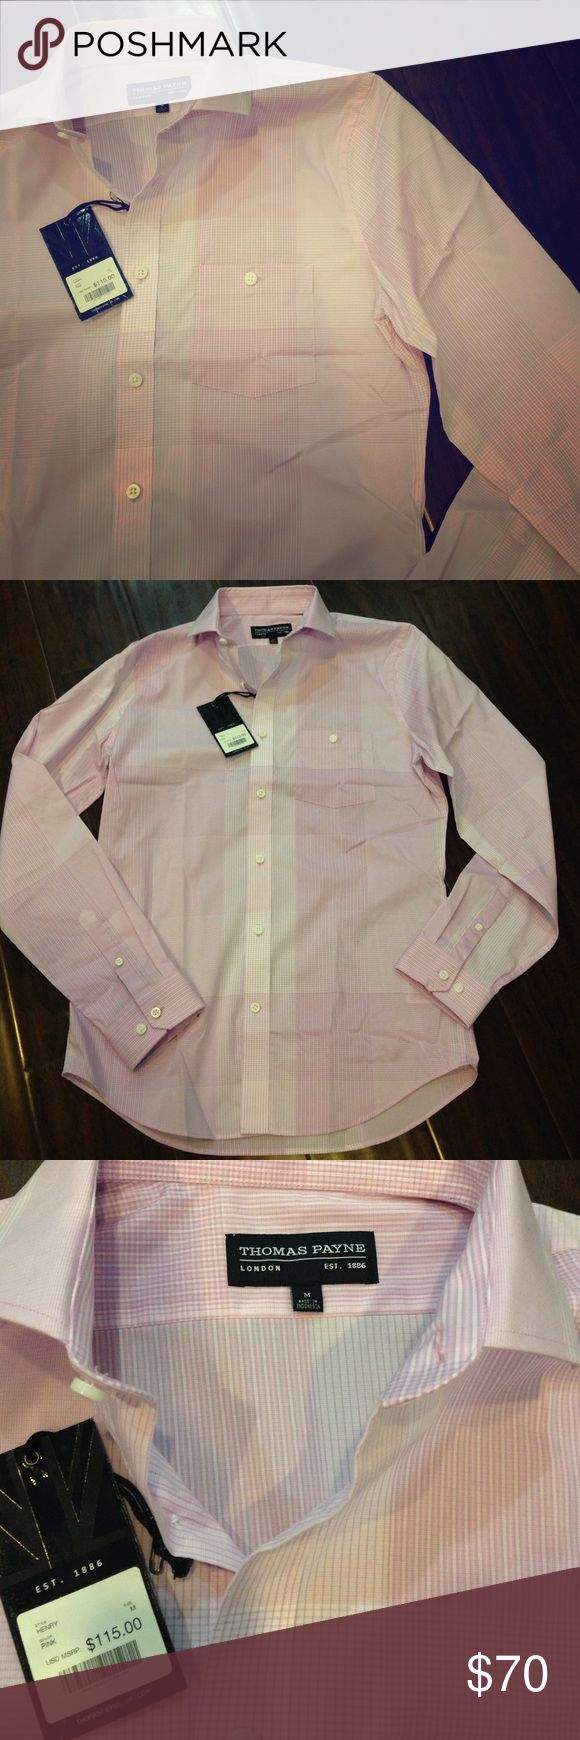 Thomas Payne button up Thomas Payne pink button up for men. Never been worn, new with tags. Thomas Payne  Shirts Dress Shirts